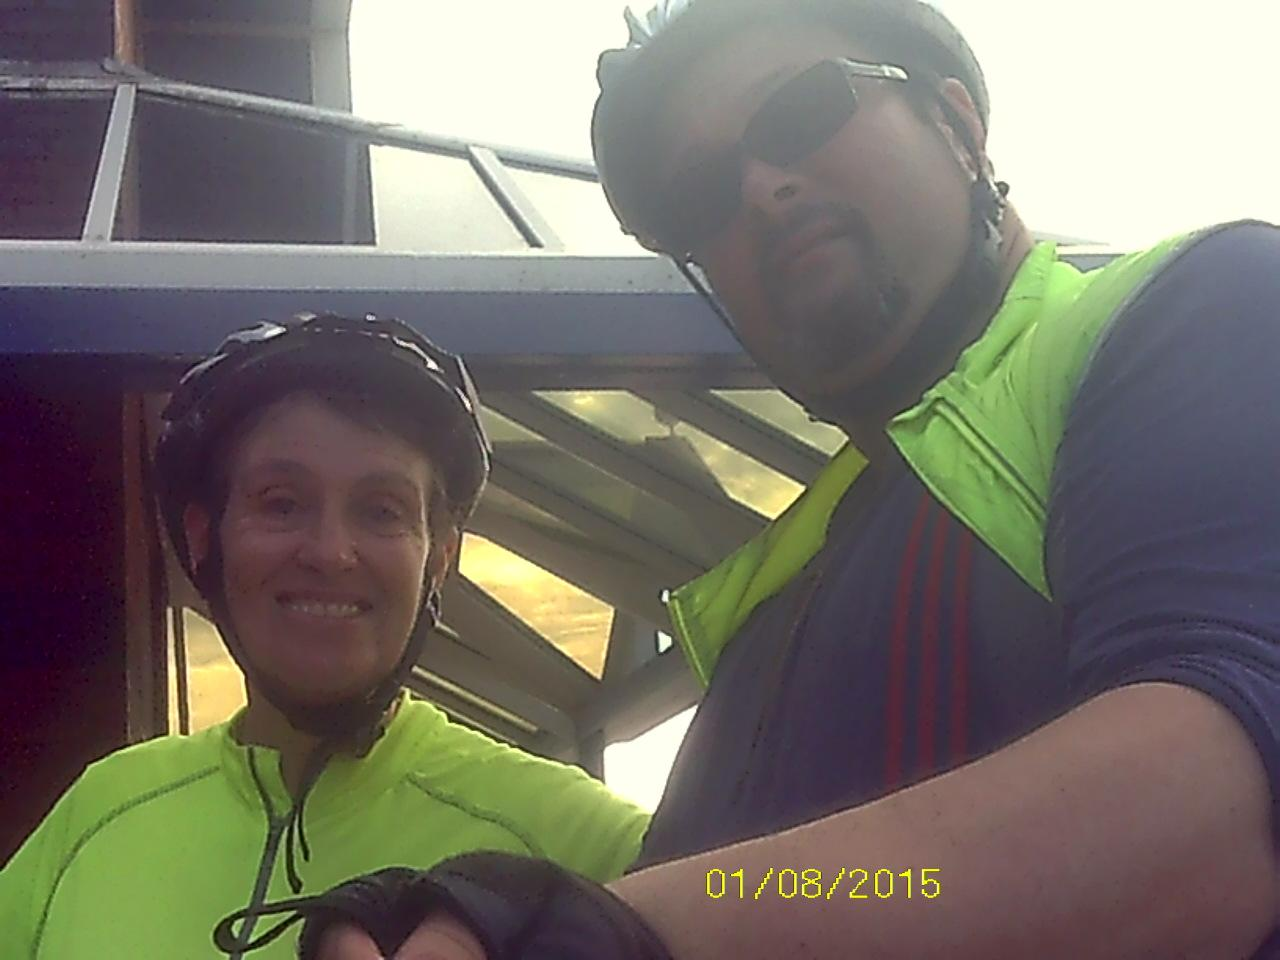 this me and my mam when we meet up this morning in Sunderland 46 miles from to day #biketrip #ncn1 http://t.co/hRfrB5MIBY